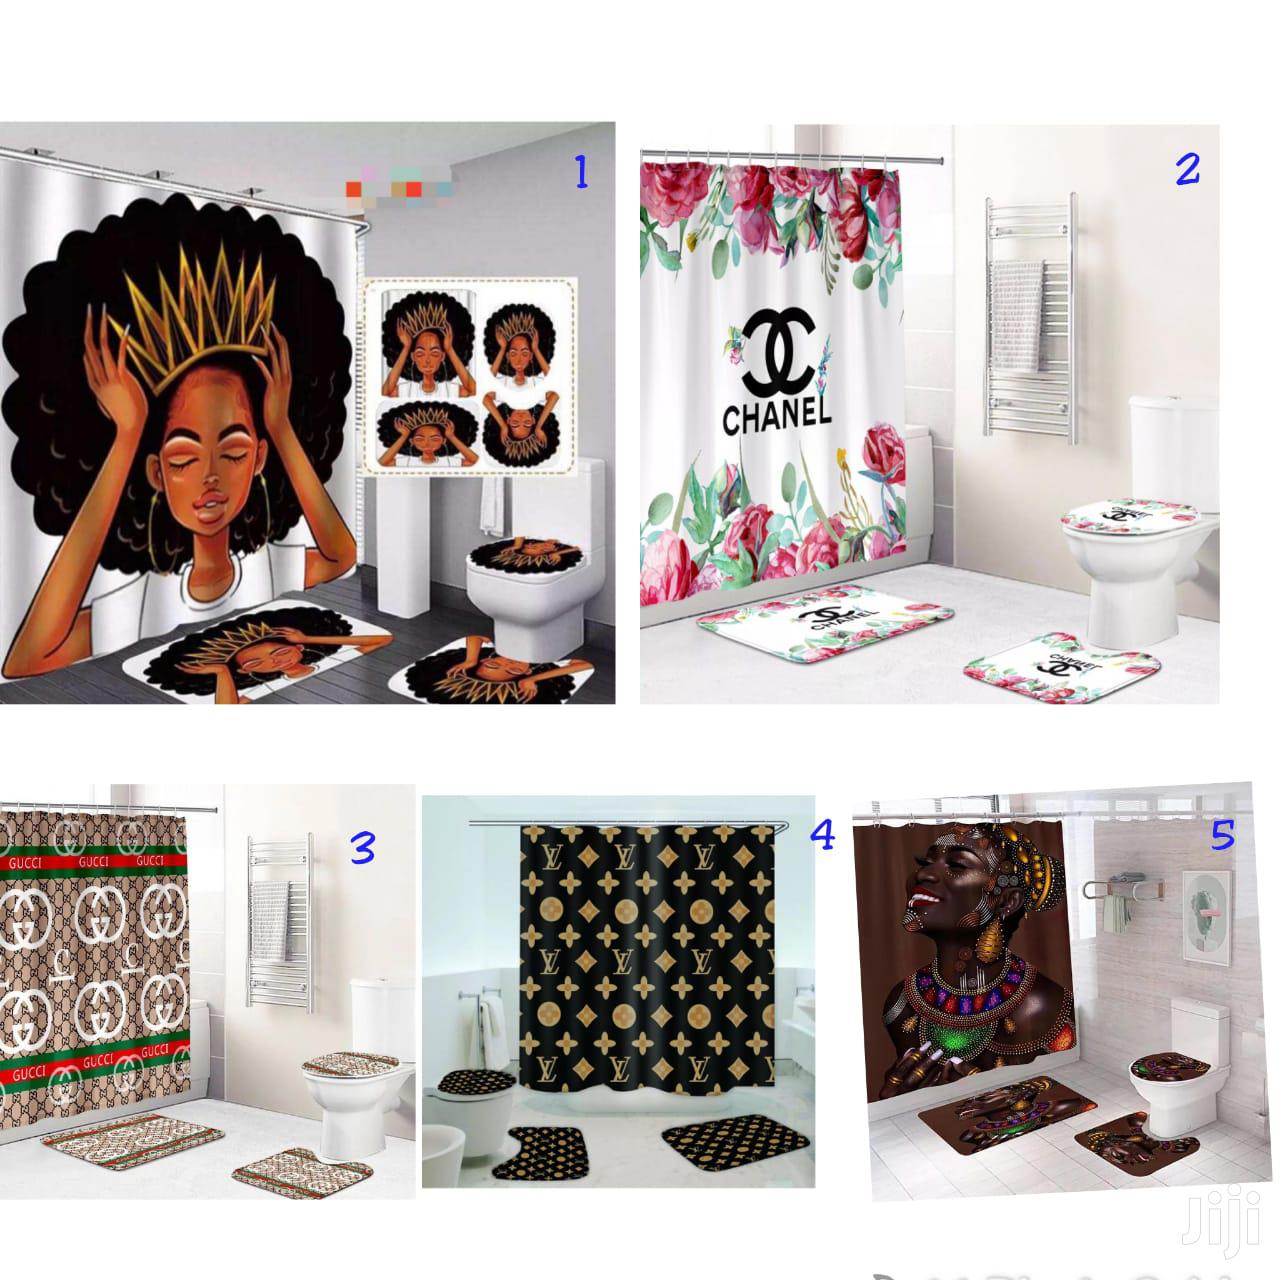 4 in one shower curtain with bathroom rugs